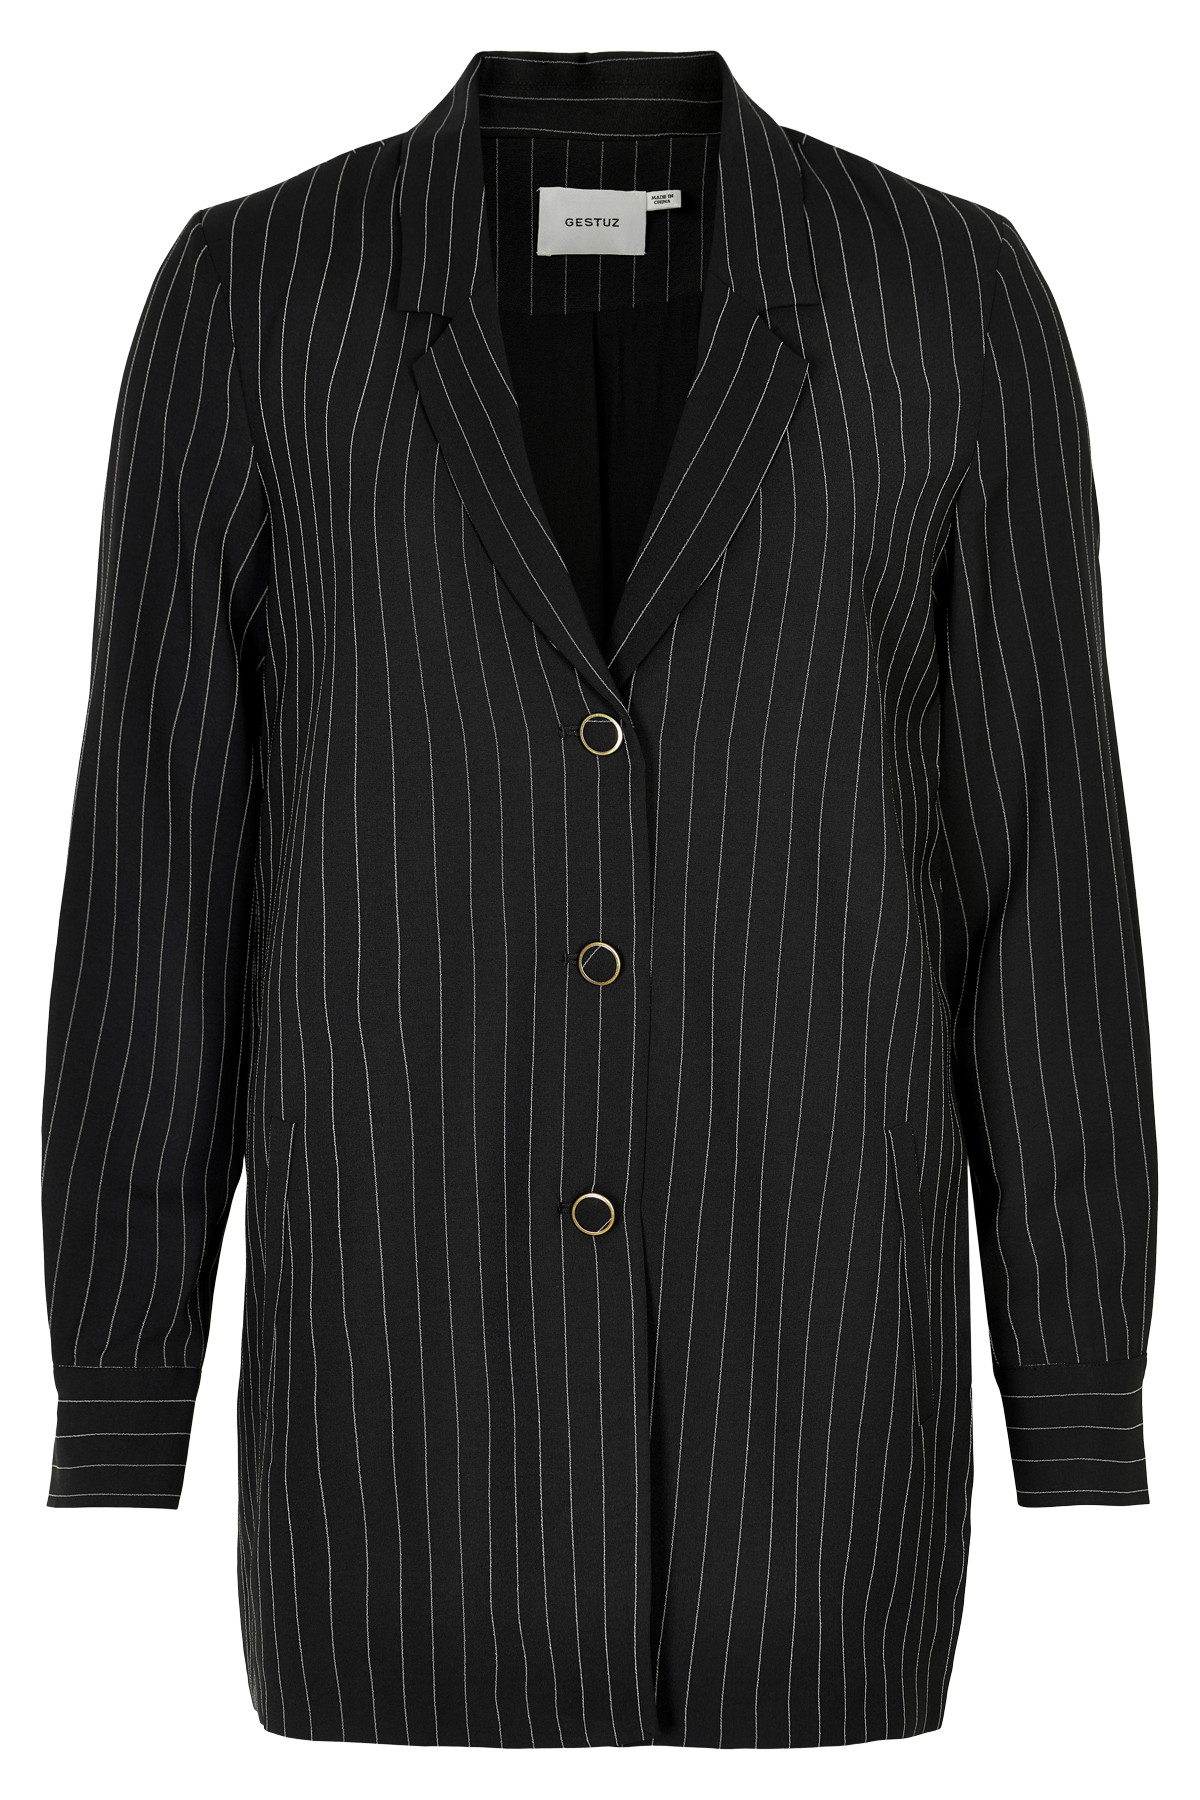 Image of   GESTUZ TARA BLAZER B (Black W. White Stripes 90136, 36)